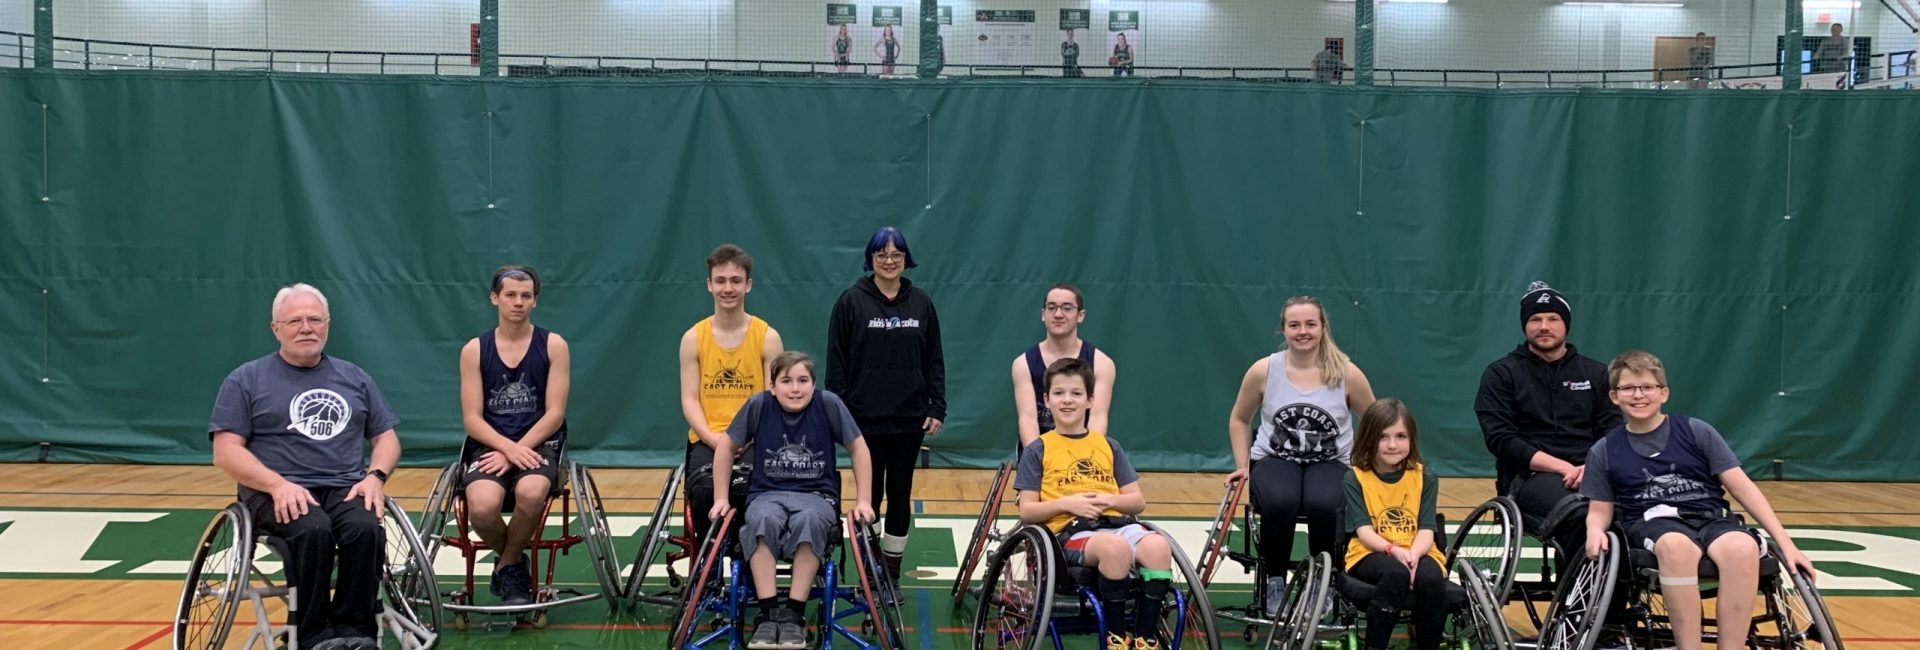 East Coast Wheelchair Basketball Camp, UPEI